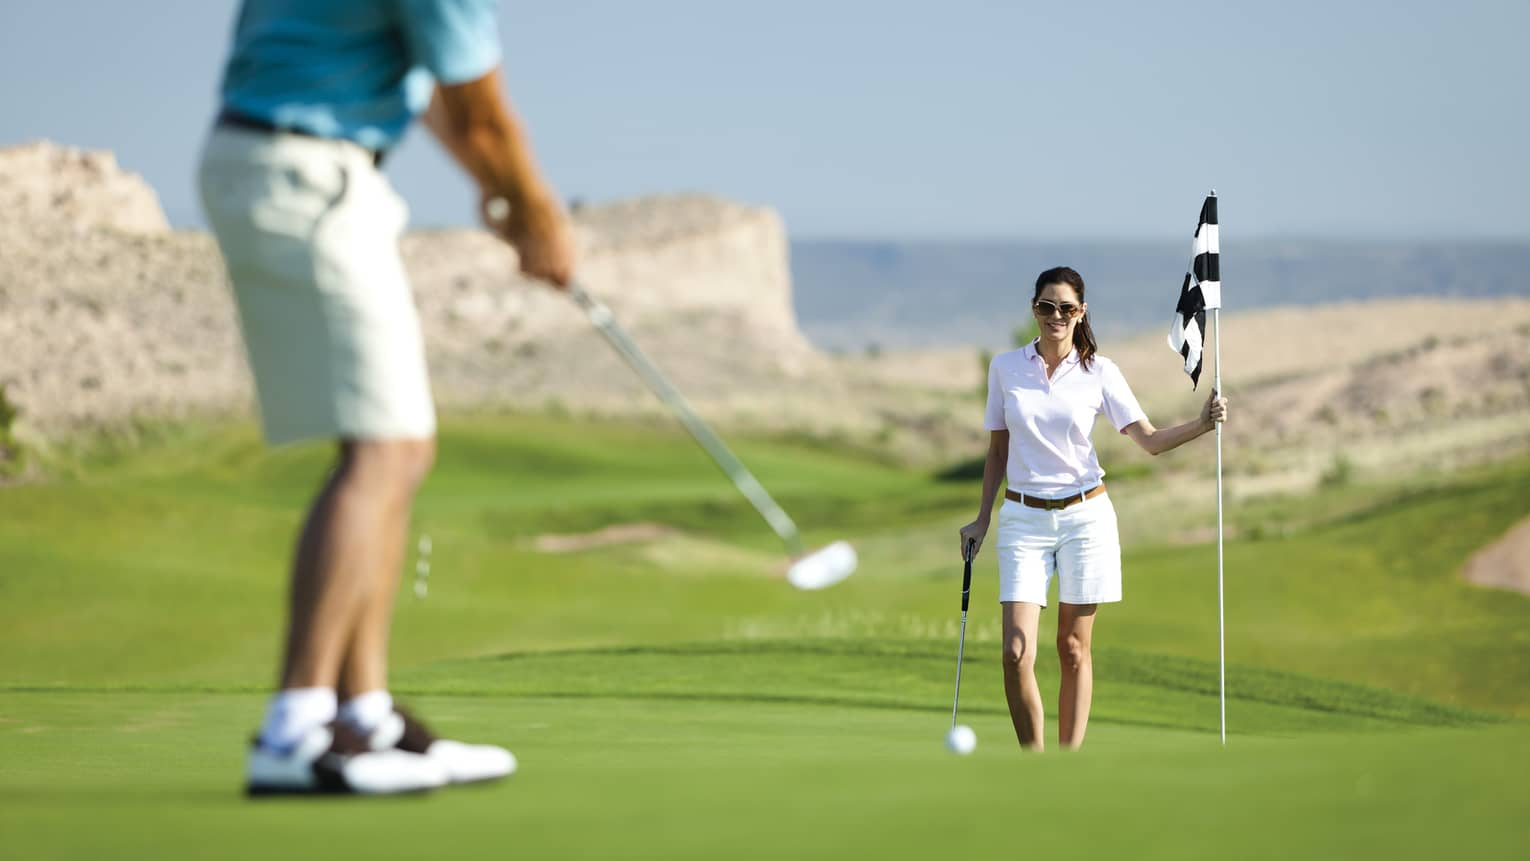 Woman holds golf flag near hole as man putts on course green